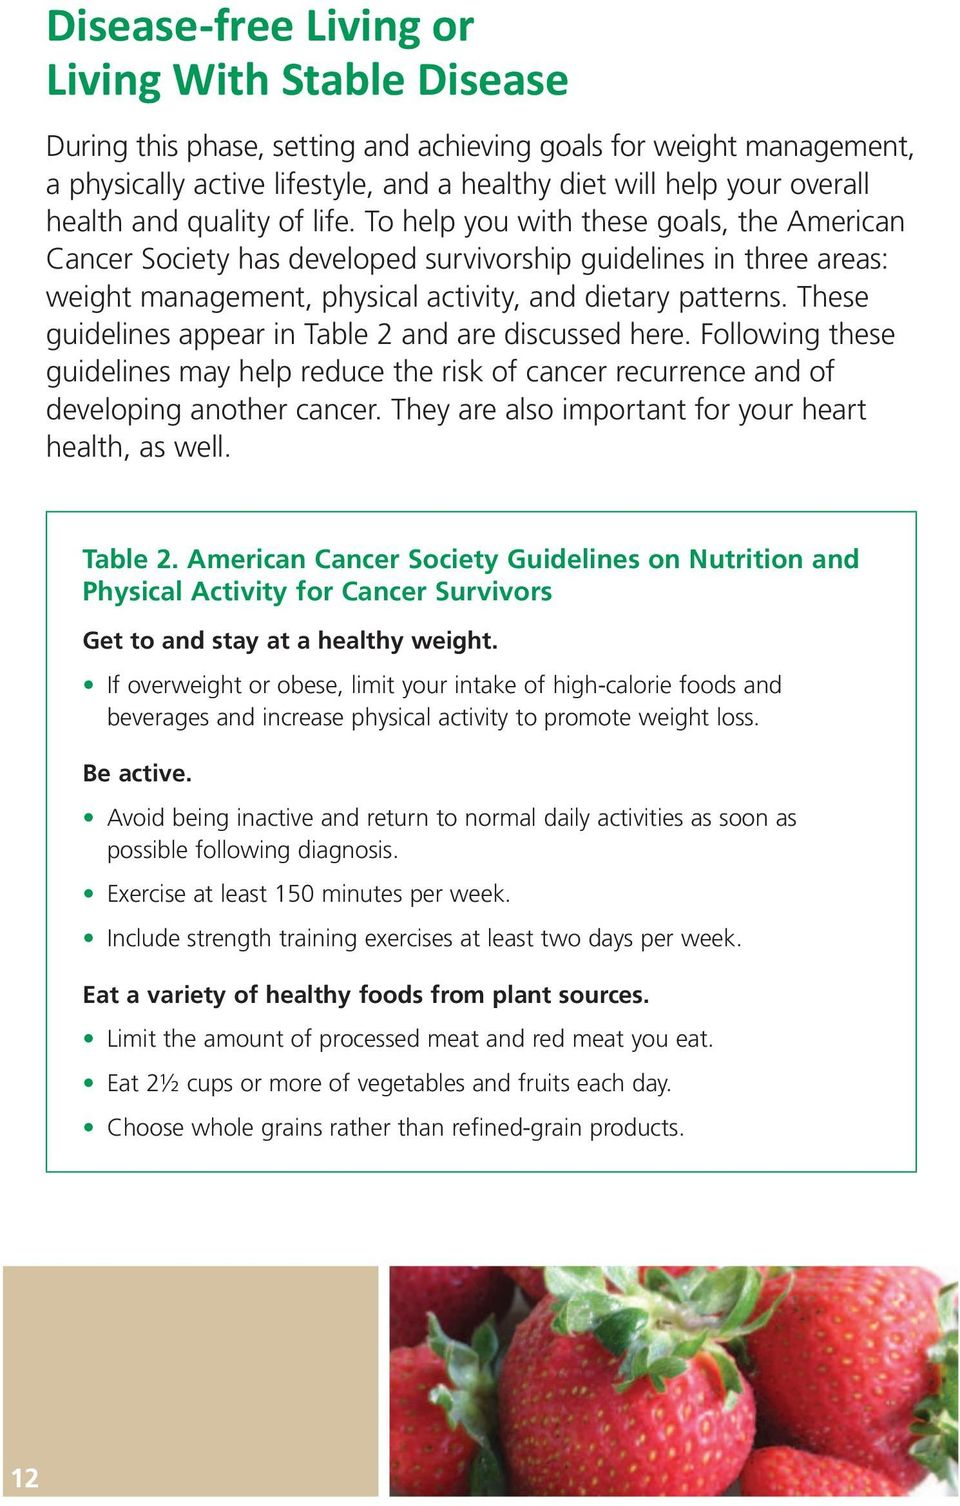 These guidelines appear in Table 2 and are discussed here. Following these guidelines may help reduce the risk of cancer recurrence and of developing another cancer.